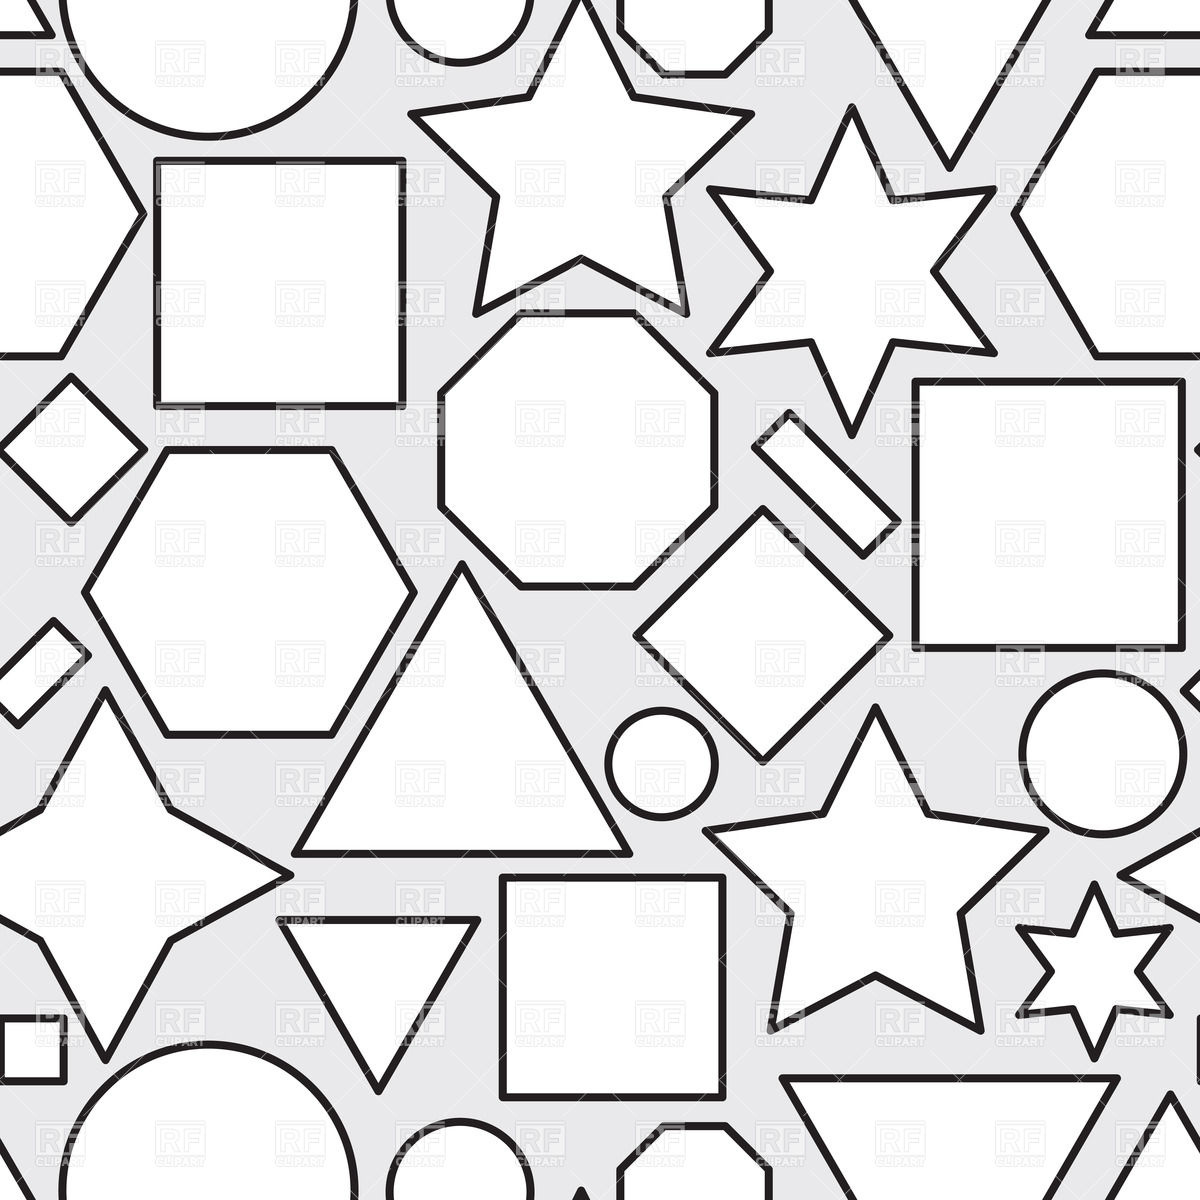 Geometrical Shapes Drawing At Getdrawings Com Free For